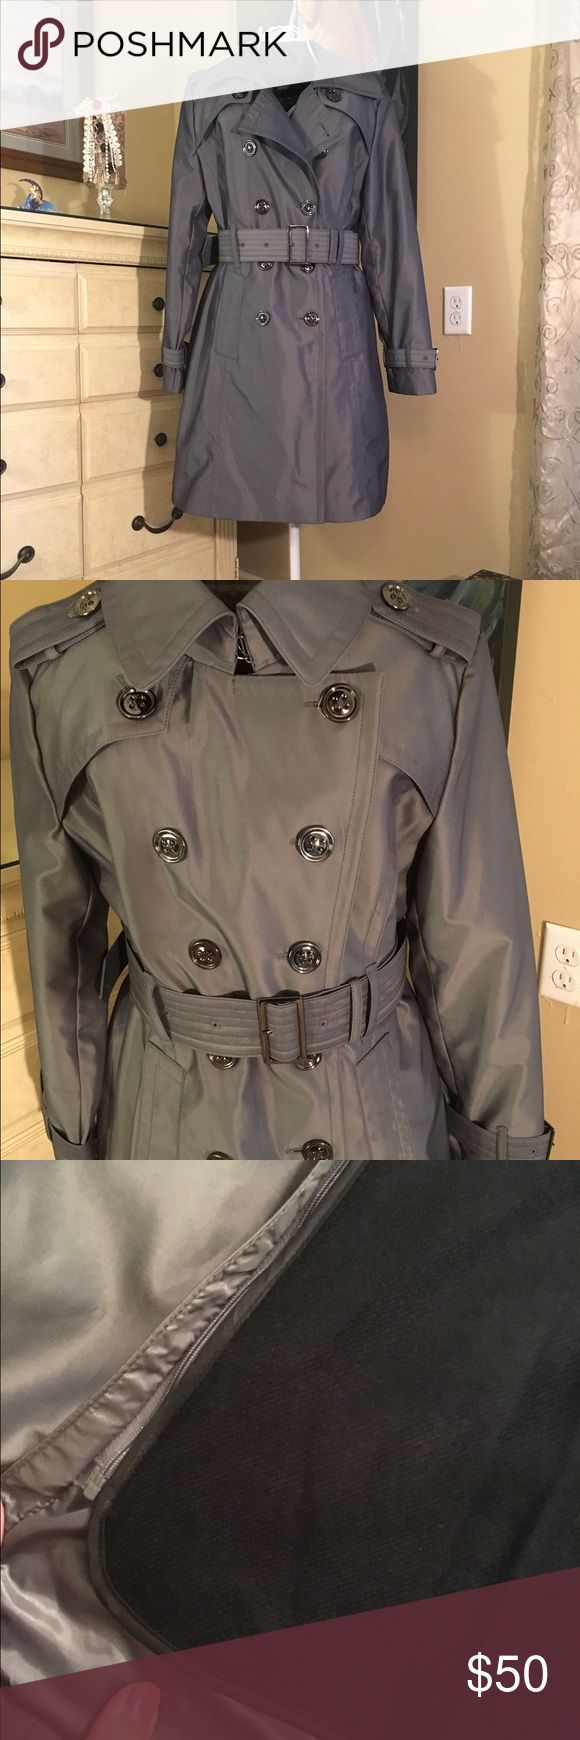 NWOT London Fog Double Breasted Trench raincoat Brand new , never worn, lined plus additional warm 100% acrylic lining which could be easily unzipped during warmer weather. Gray-metallic color. Size PM. London Fog Jackets & Coats Trench Coats